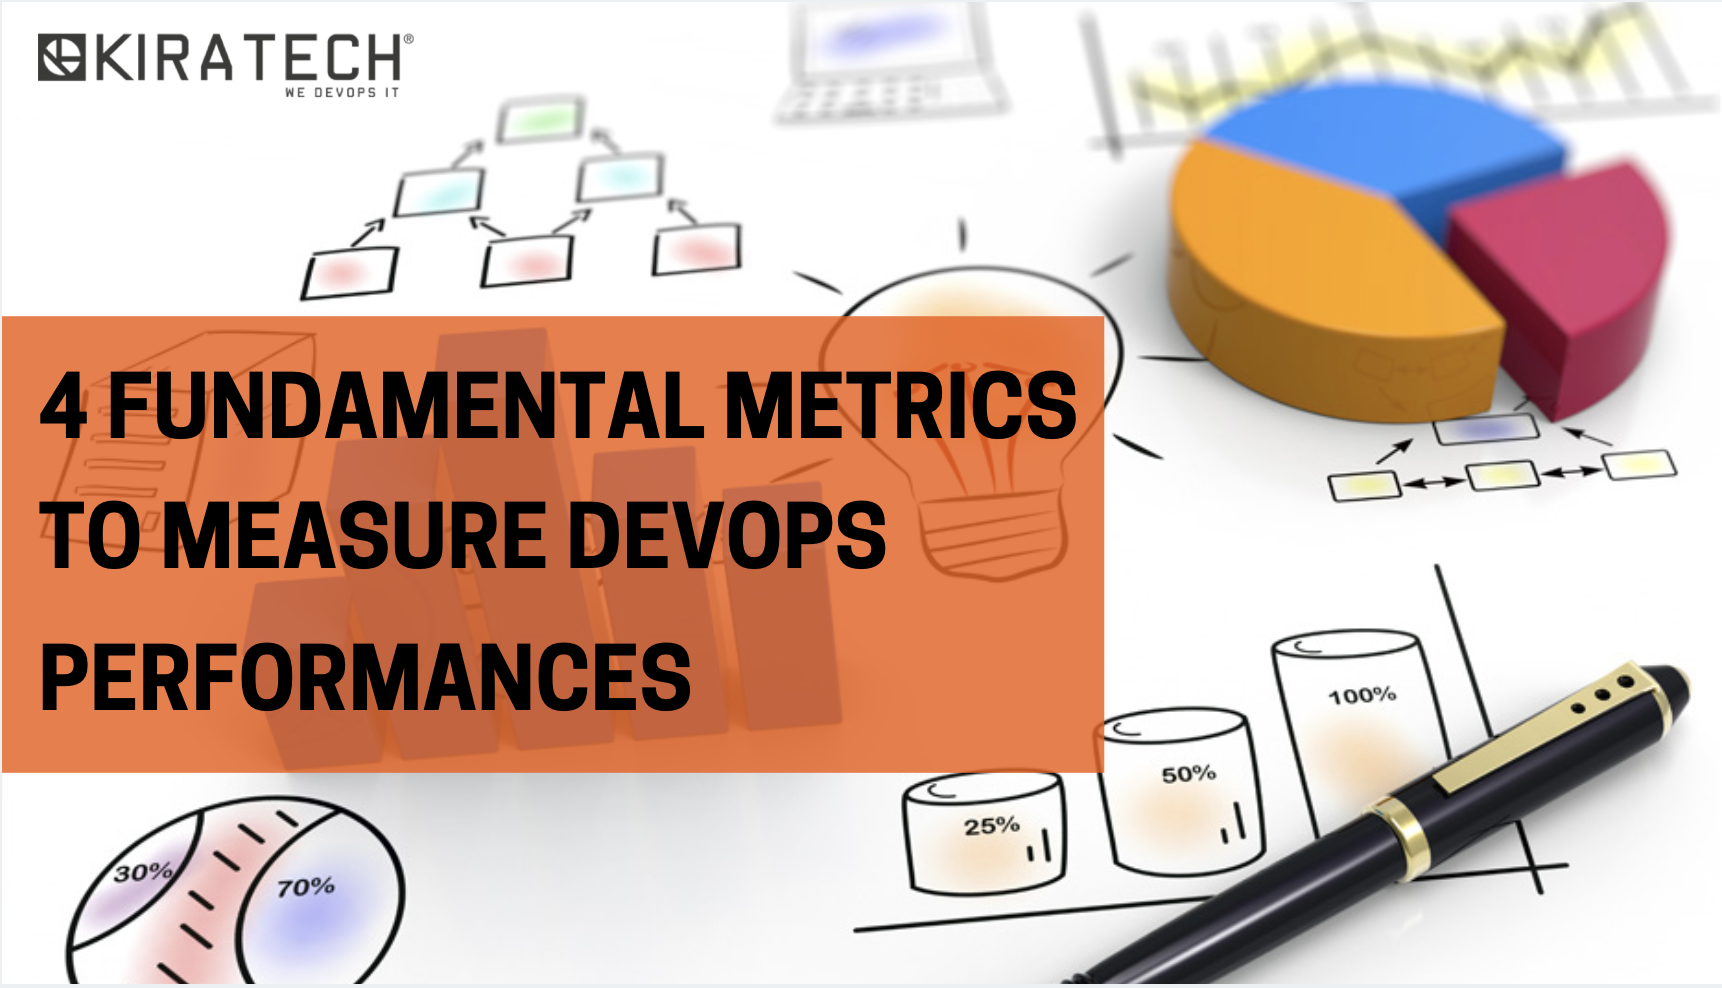 4_fundamental _metrics _to_measure_DevOps_performances_Kiratech_EN